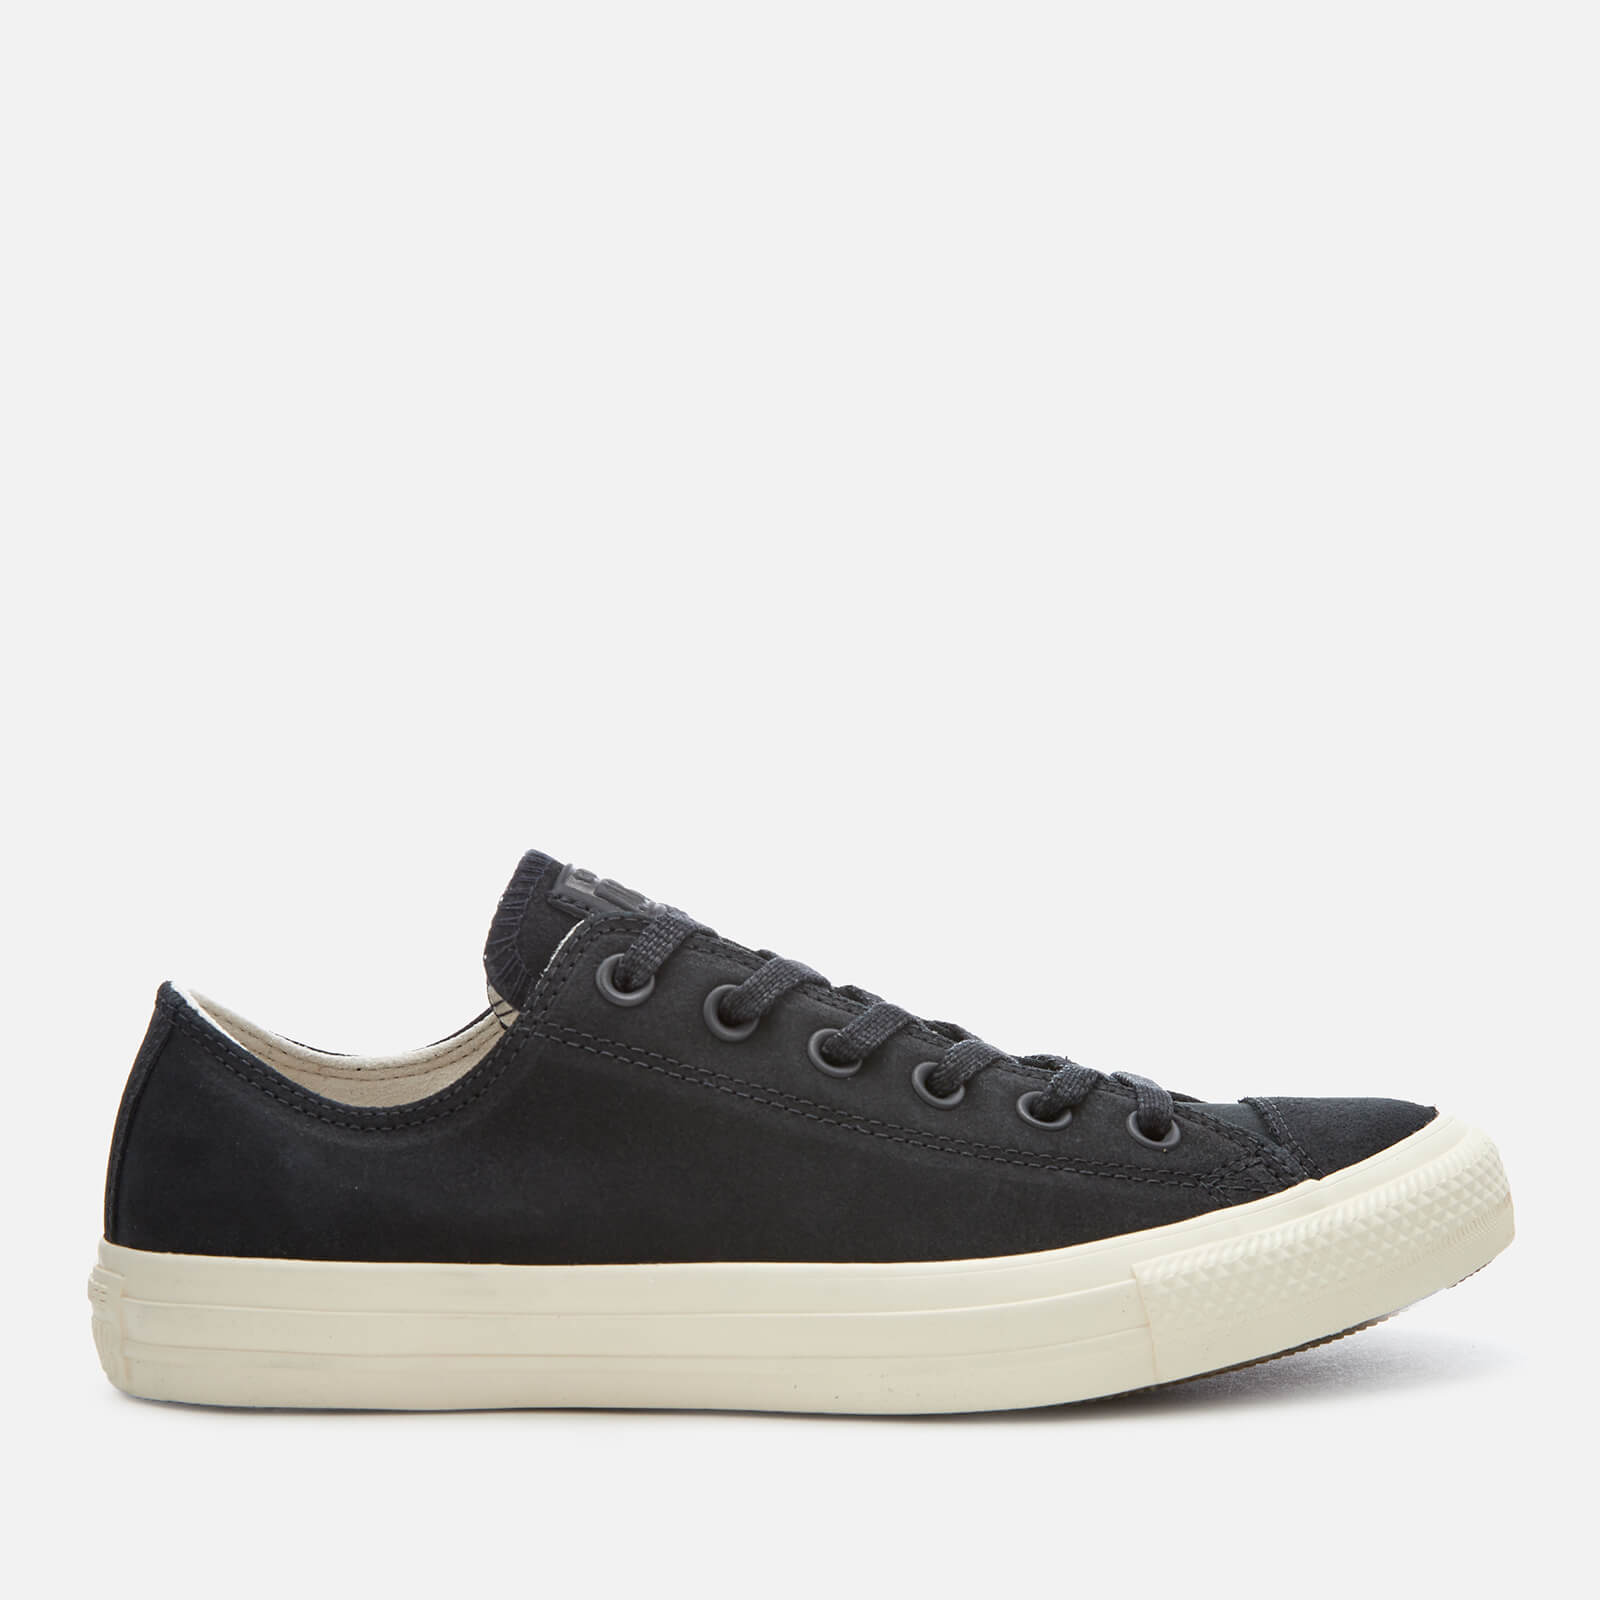 Converse Men's Chuck Taylor All Star Ox Trainers Black